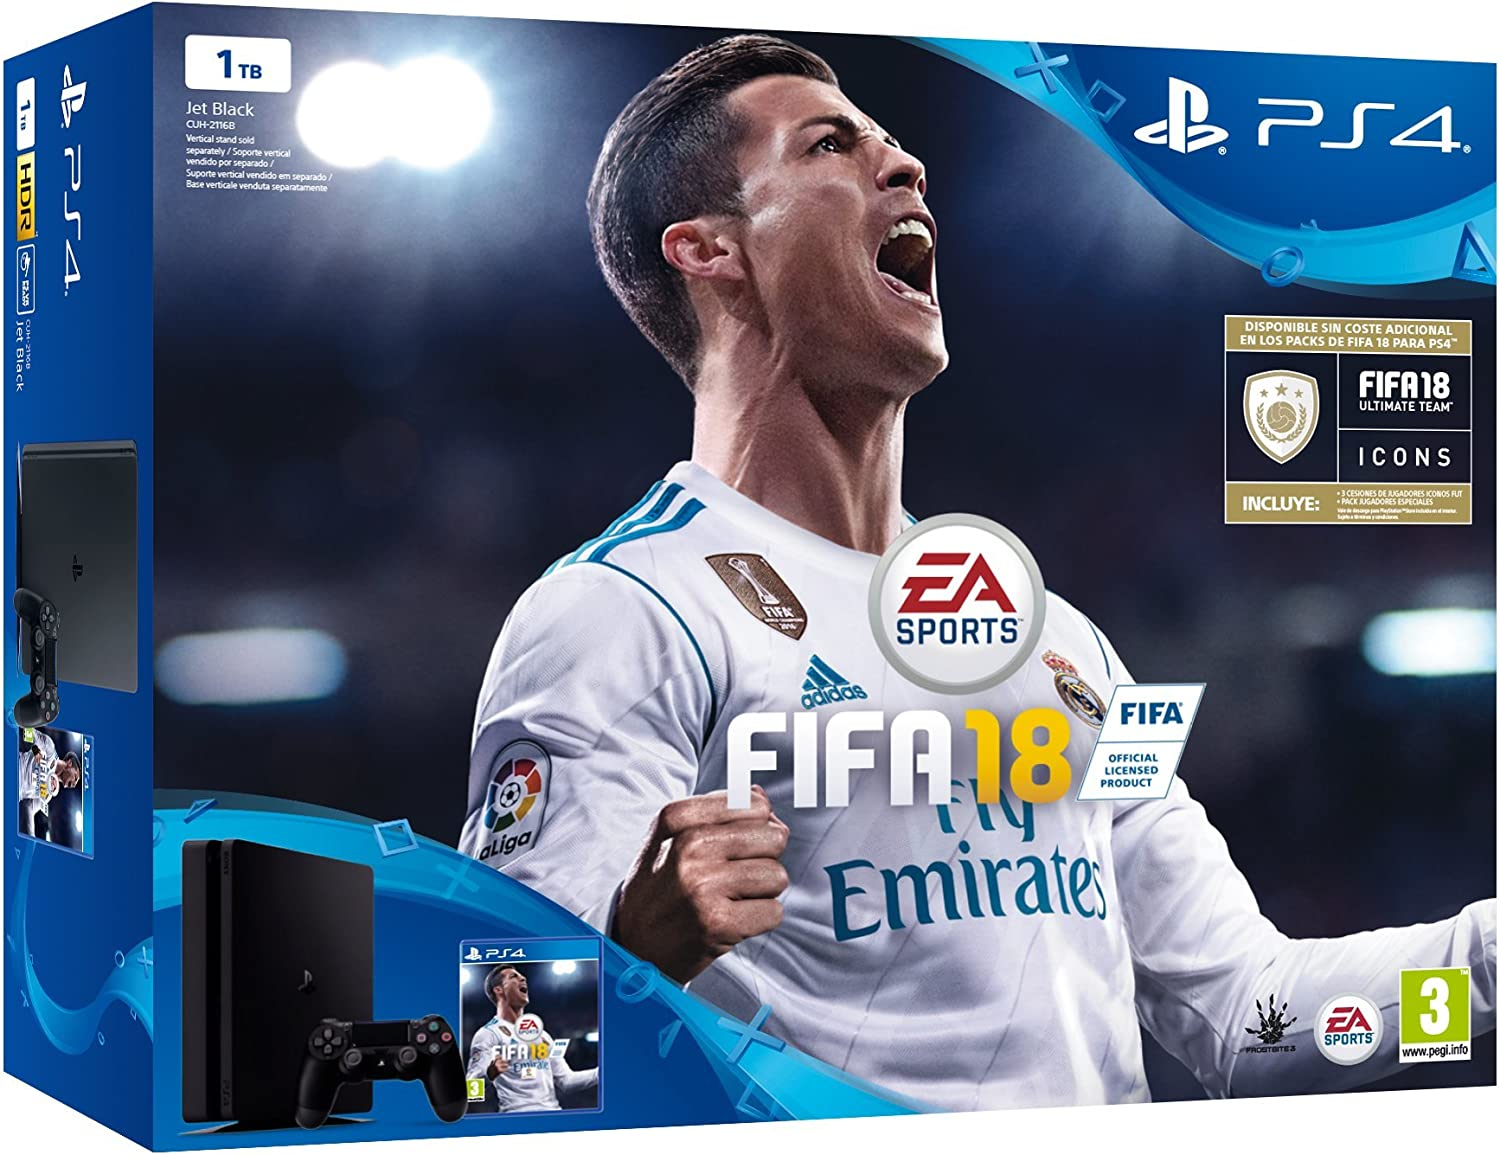 Sony, PlayStation 4 (PS4) - Consola de 1 TB + FIFA 18: Amazon.es ...